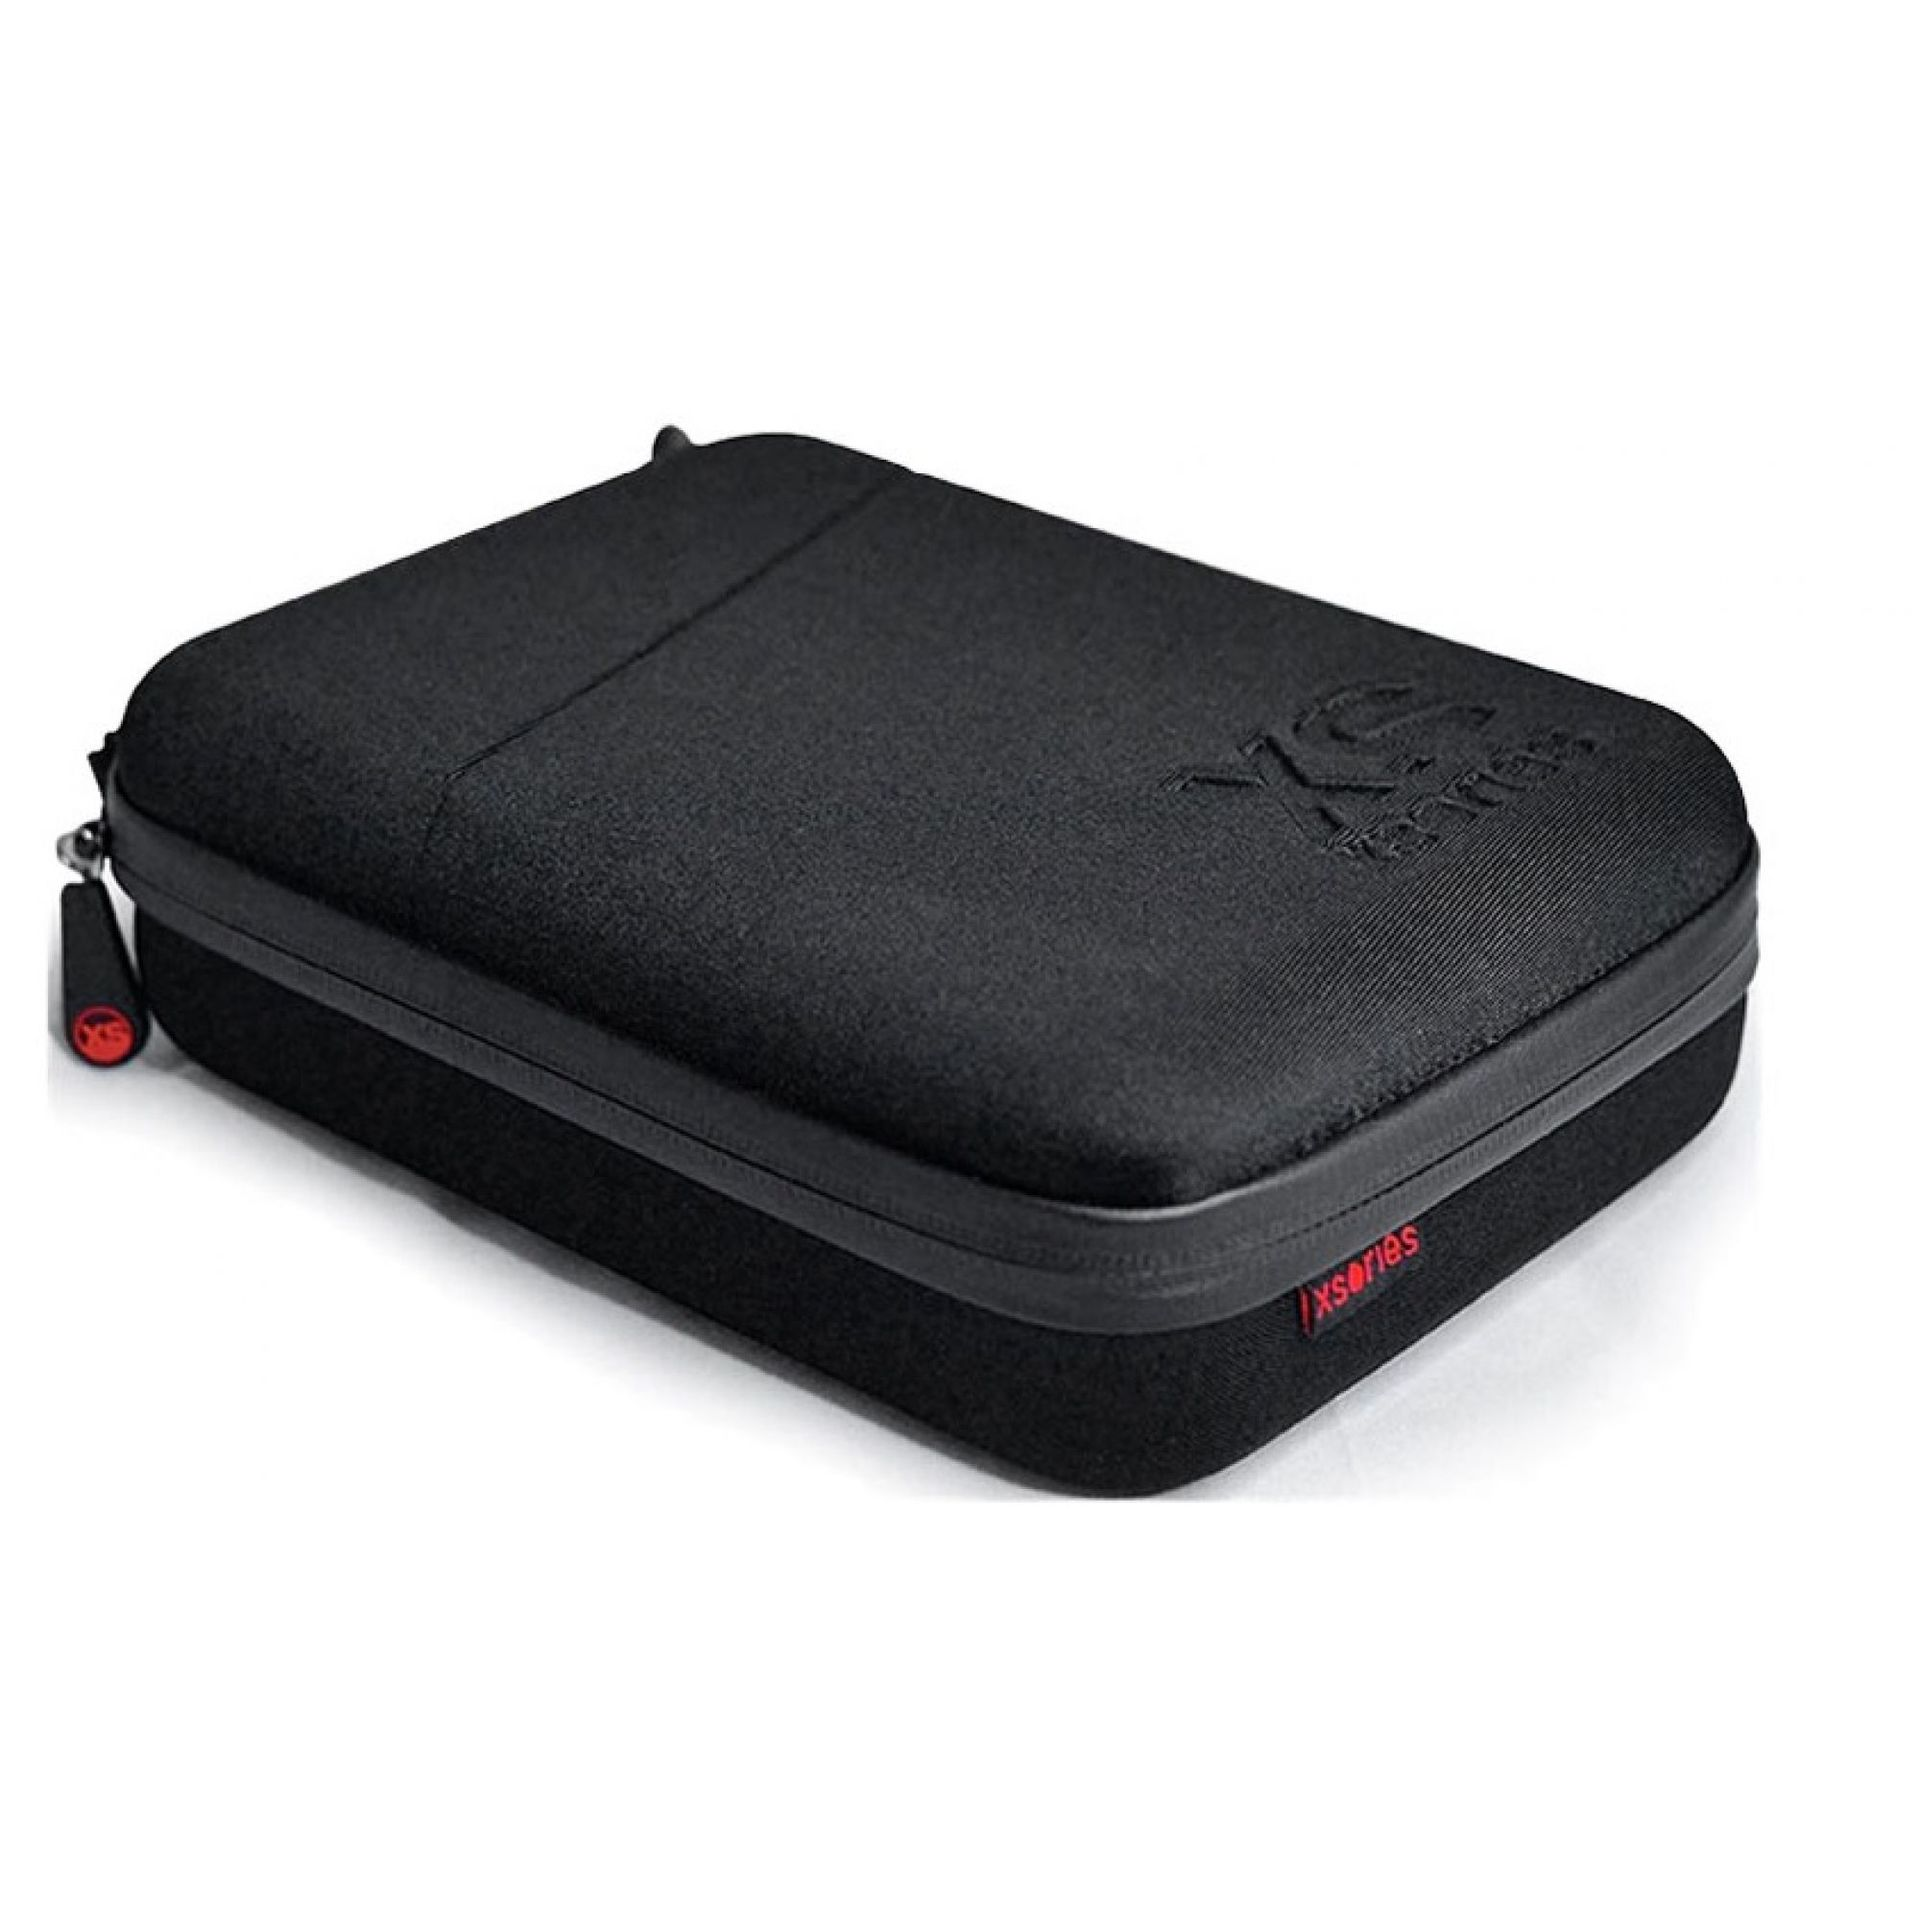 ETUI XSORIES SMALL CAPXULE SOFT CASE